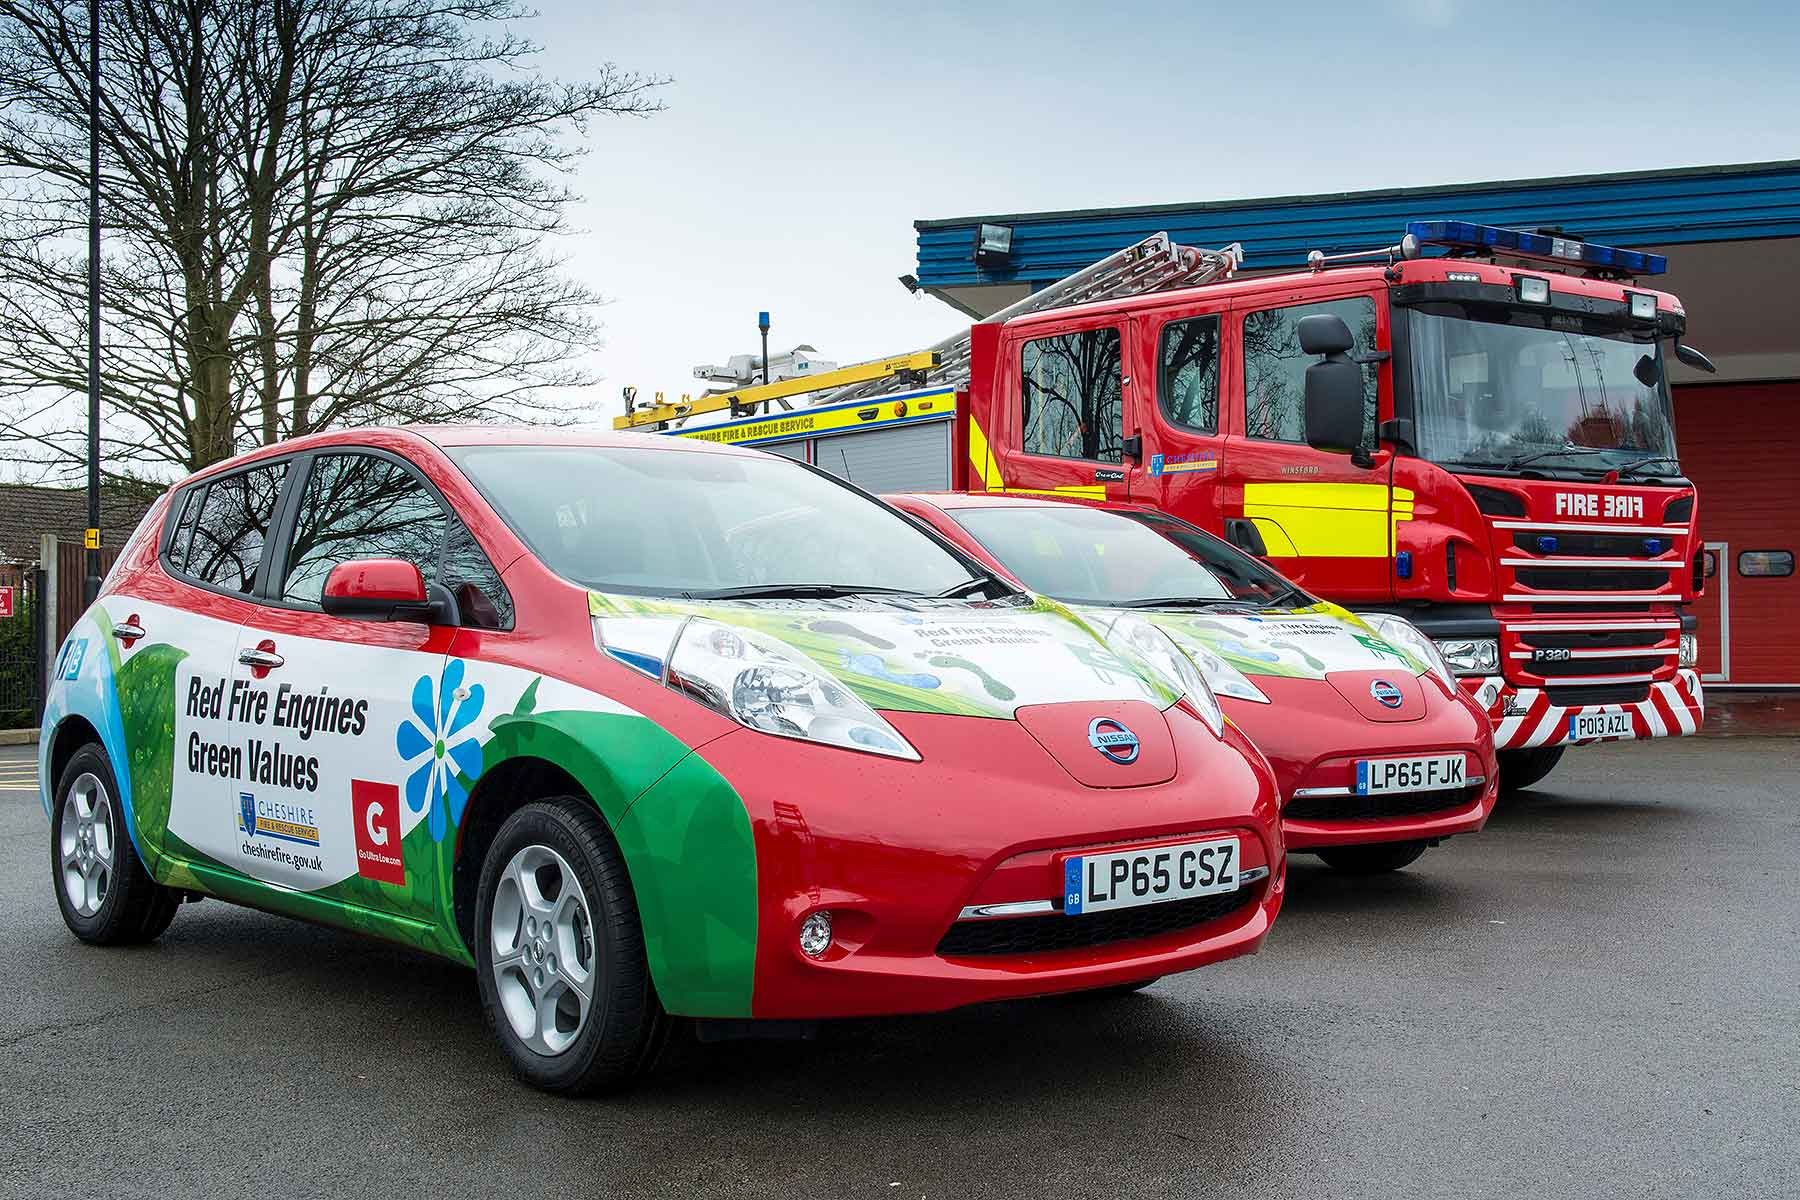 Nissan EV London Fire Brigade